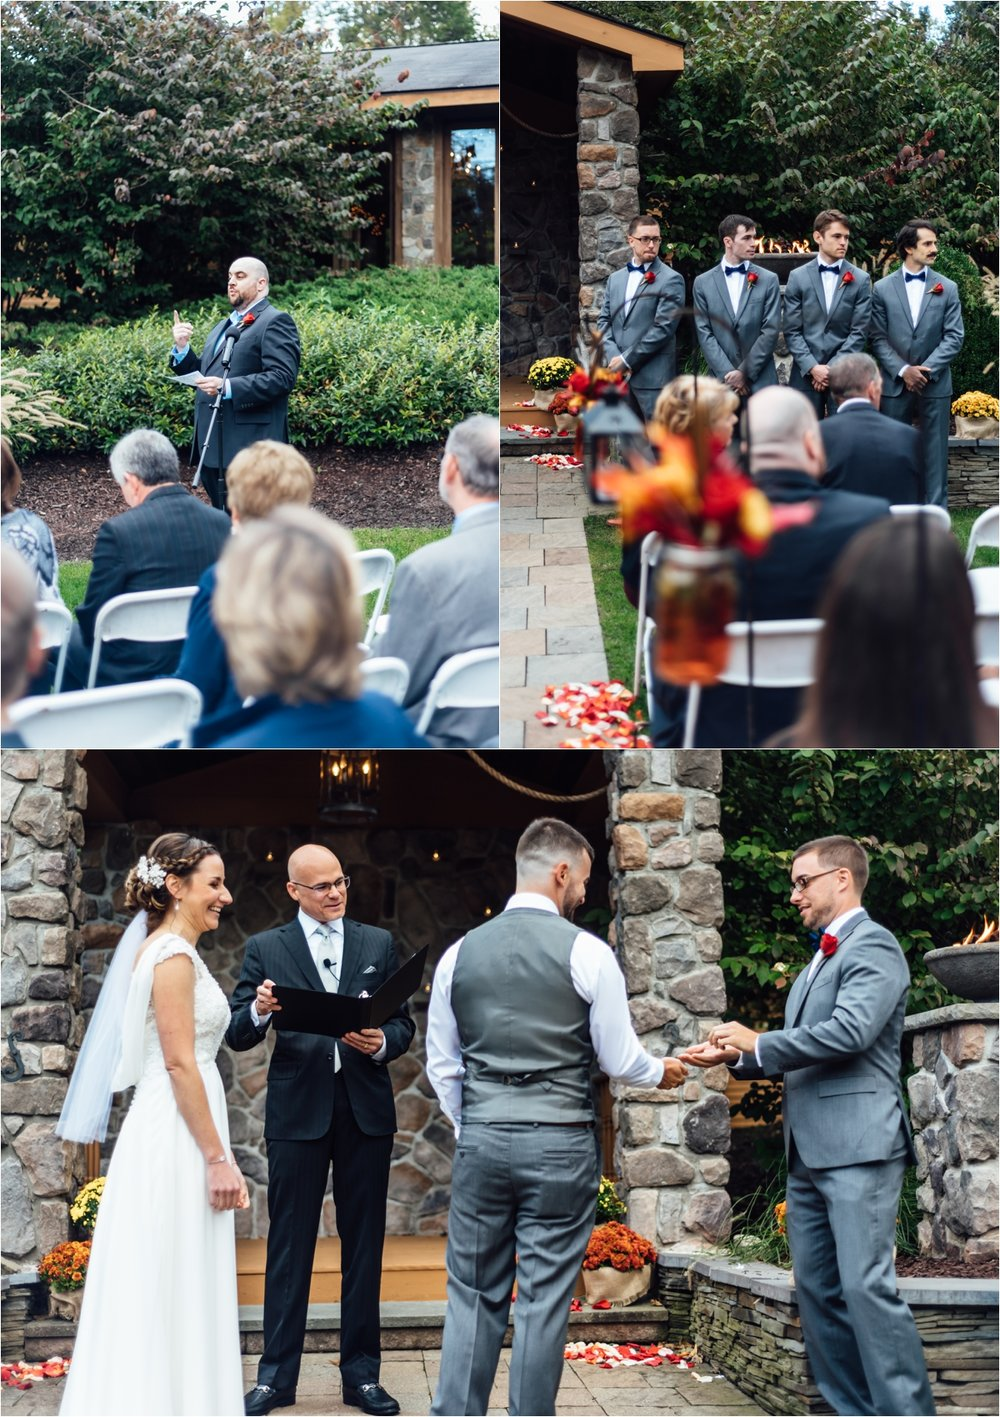 Sarah_&_Doug_Stroudsberg_Wedding_the_photo_farm_0031.jpg